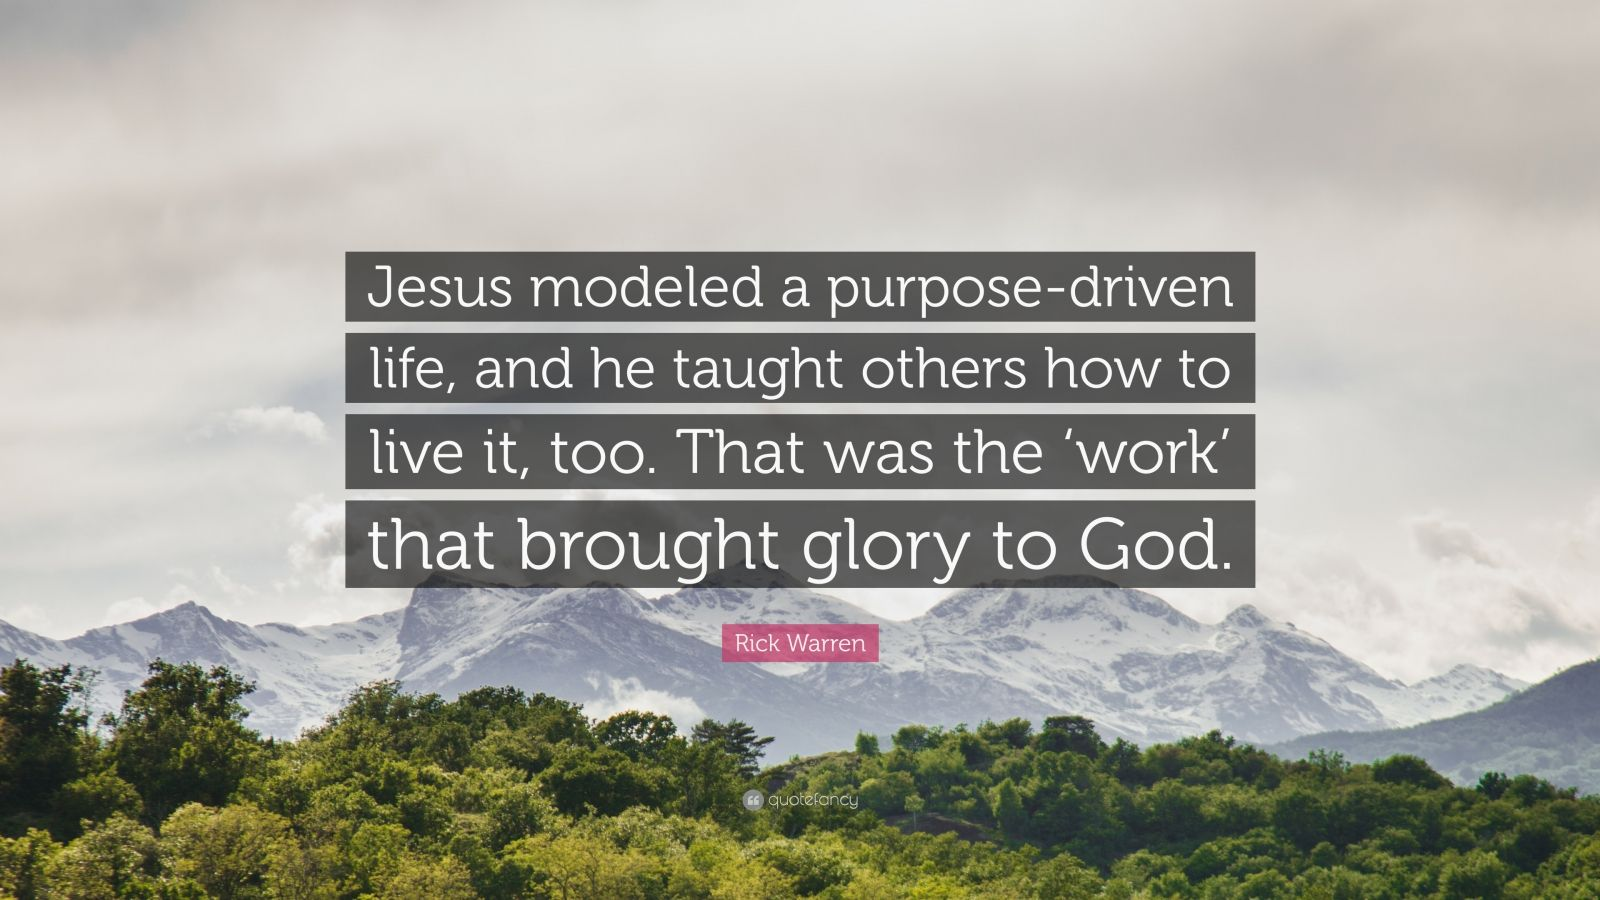 """Rick Warren Quote: """"Jesus modeled a purpose-driven life, and he taught others how to live it, too. That was the 'work' that brought glory to God."""""""